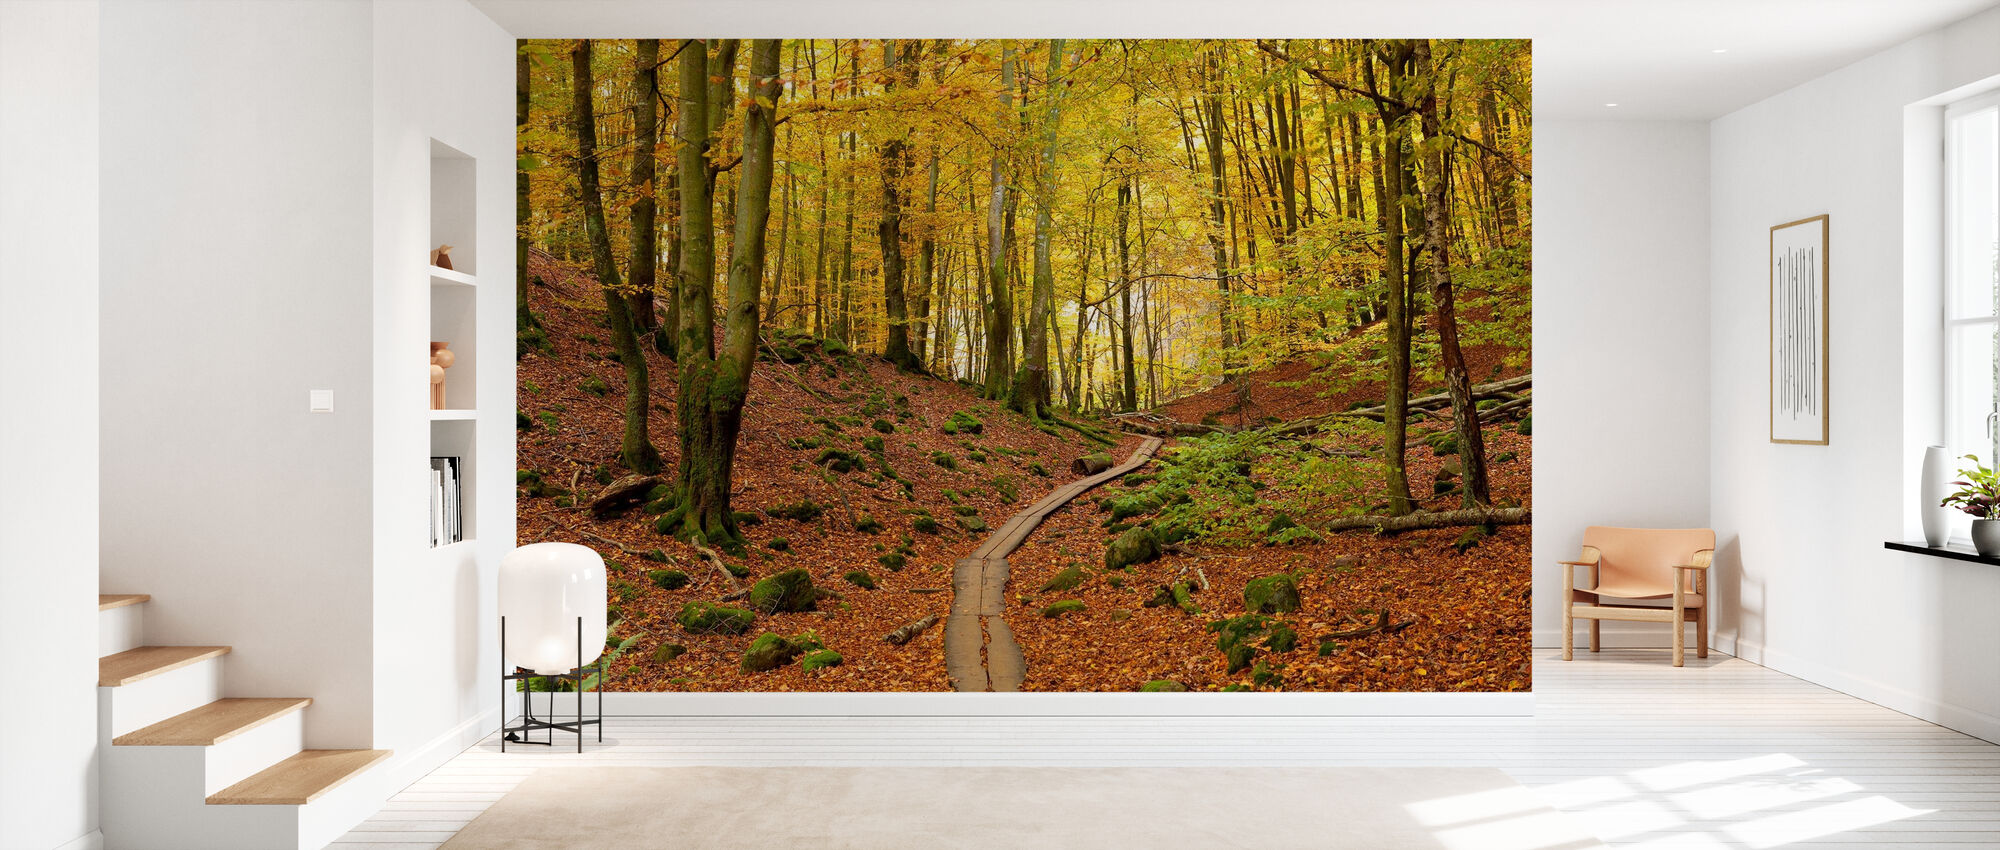 Soderasen Beech Wood, Sweden, Europe - Wallpaper - Hallway